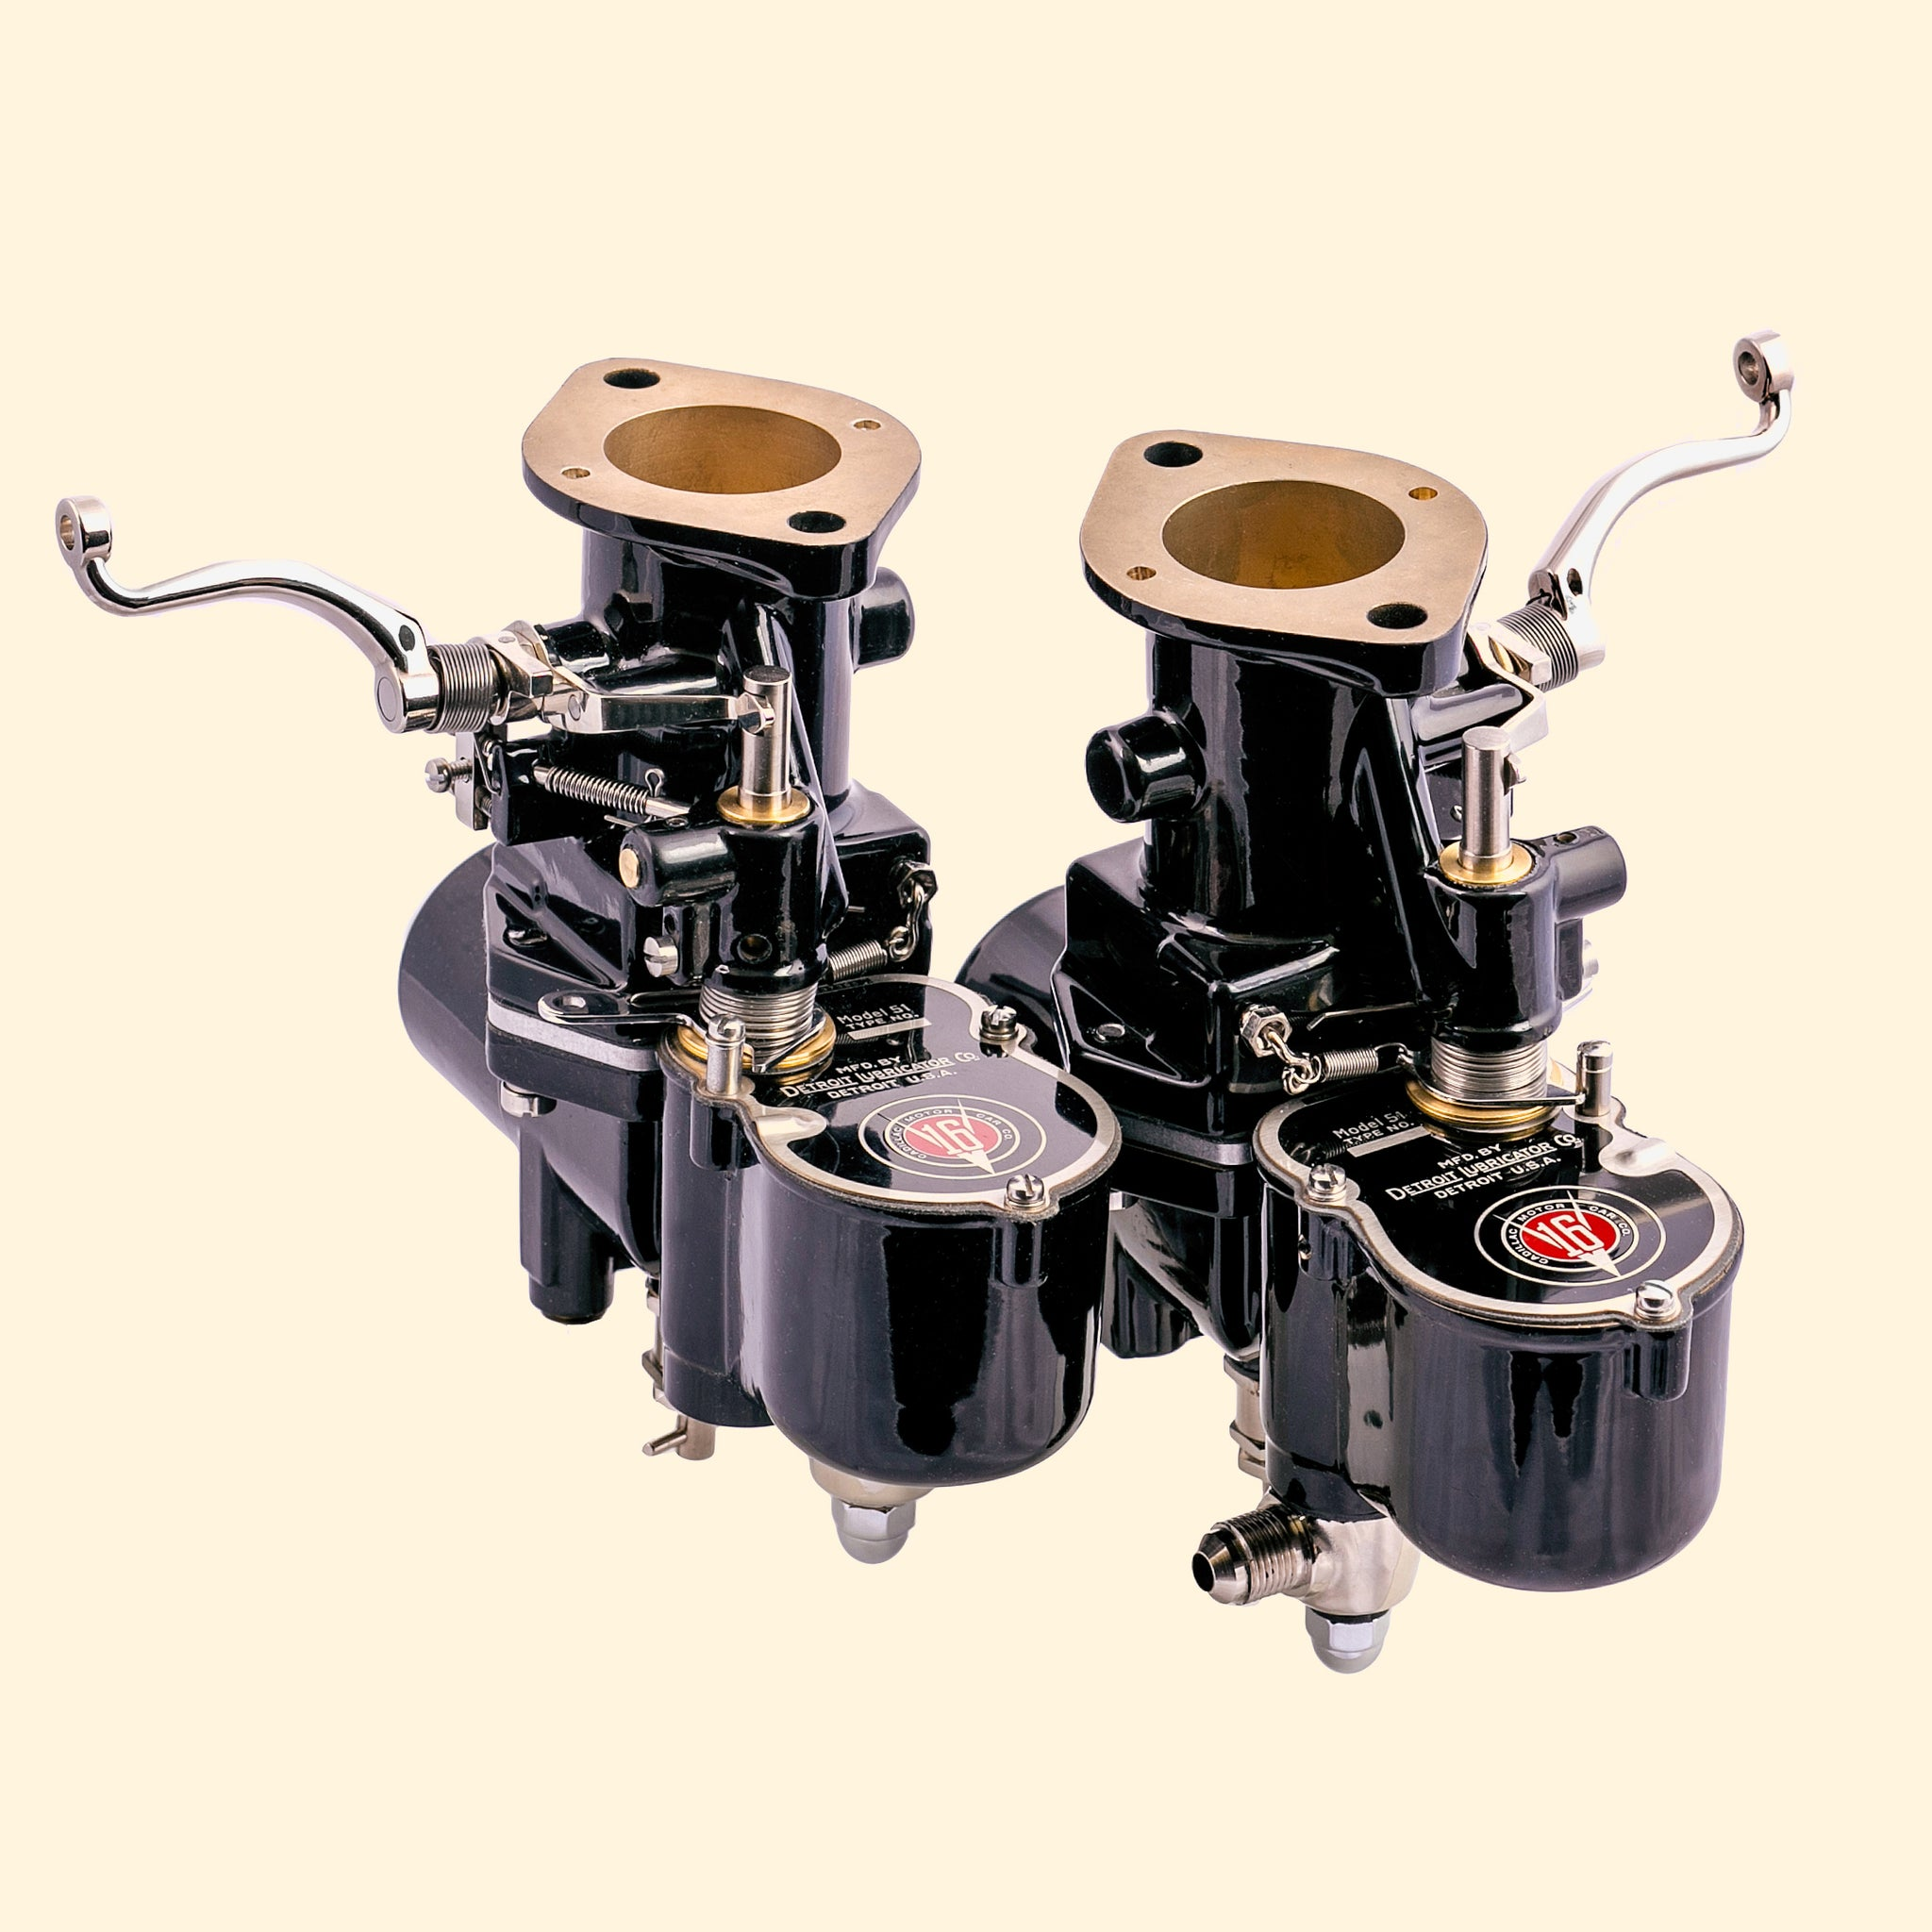 1932 to 1933 Cadillac V-16 Carburetors (Pair)